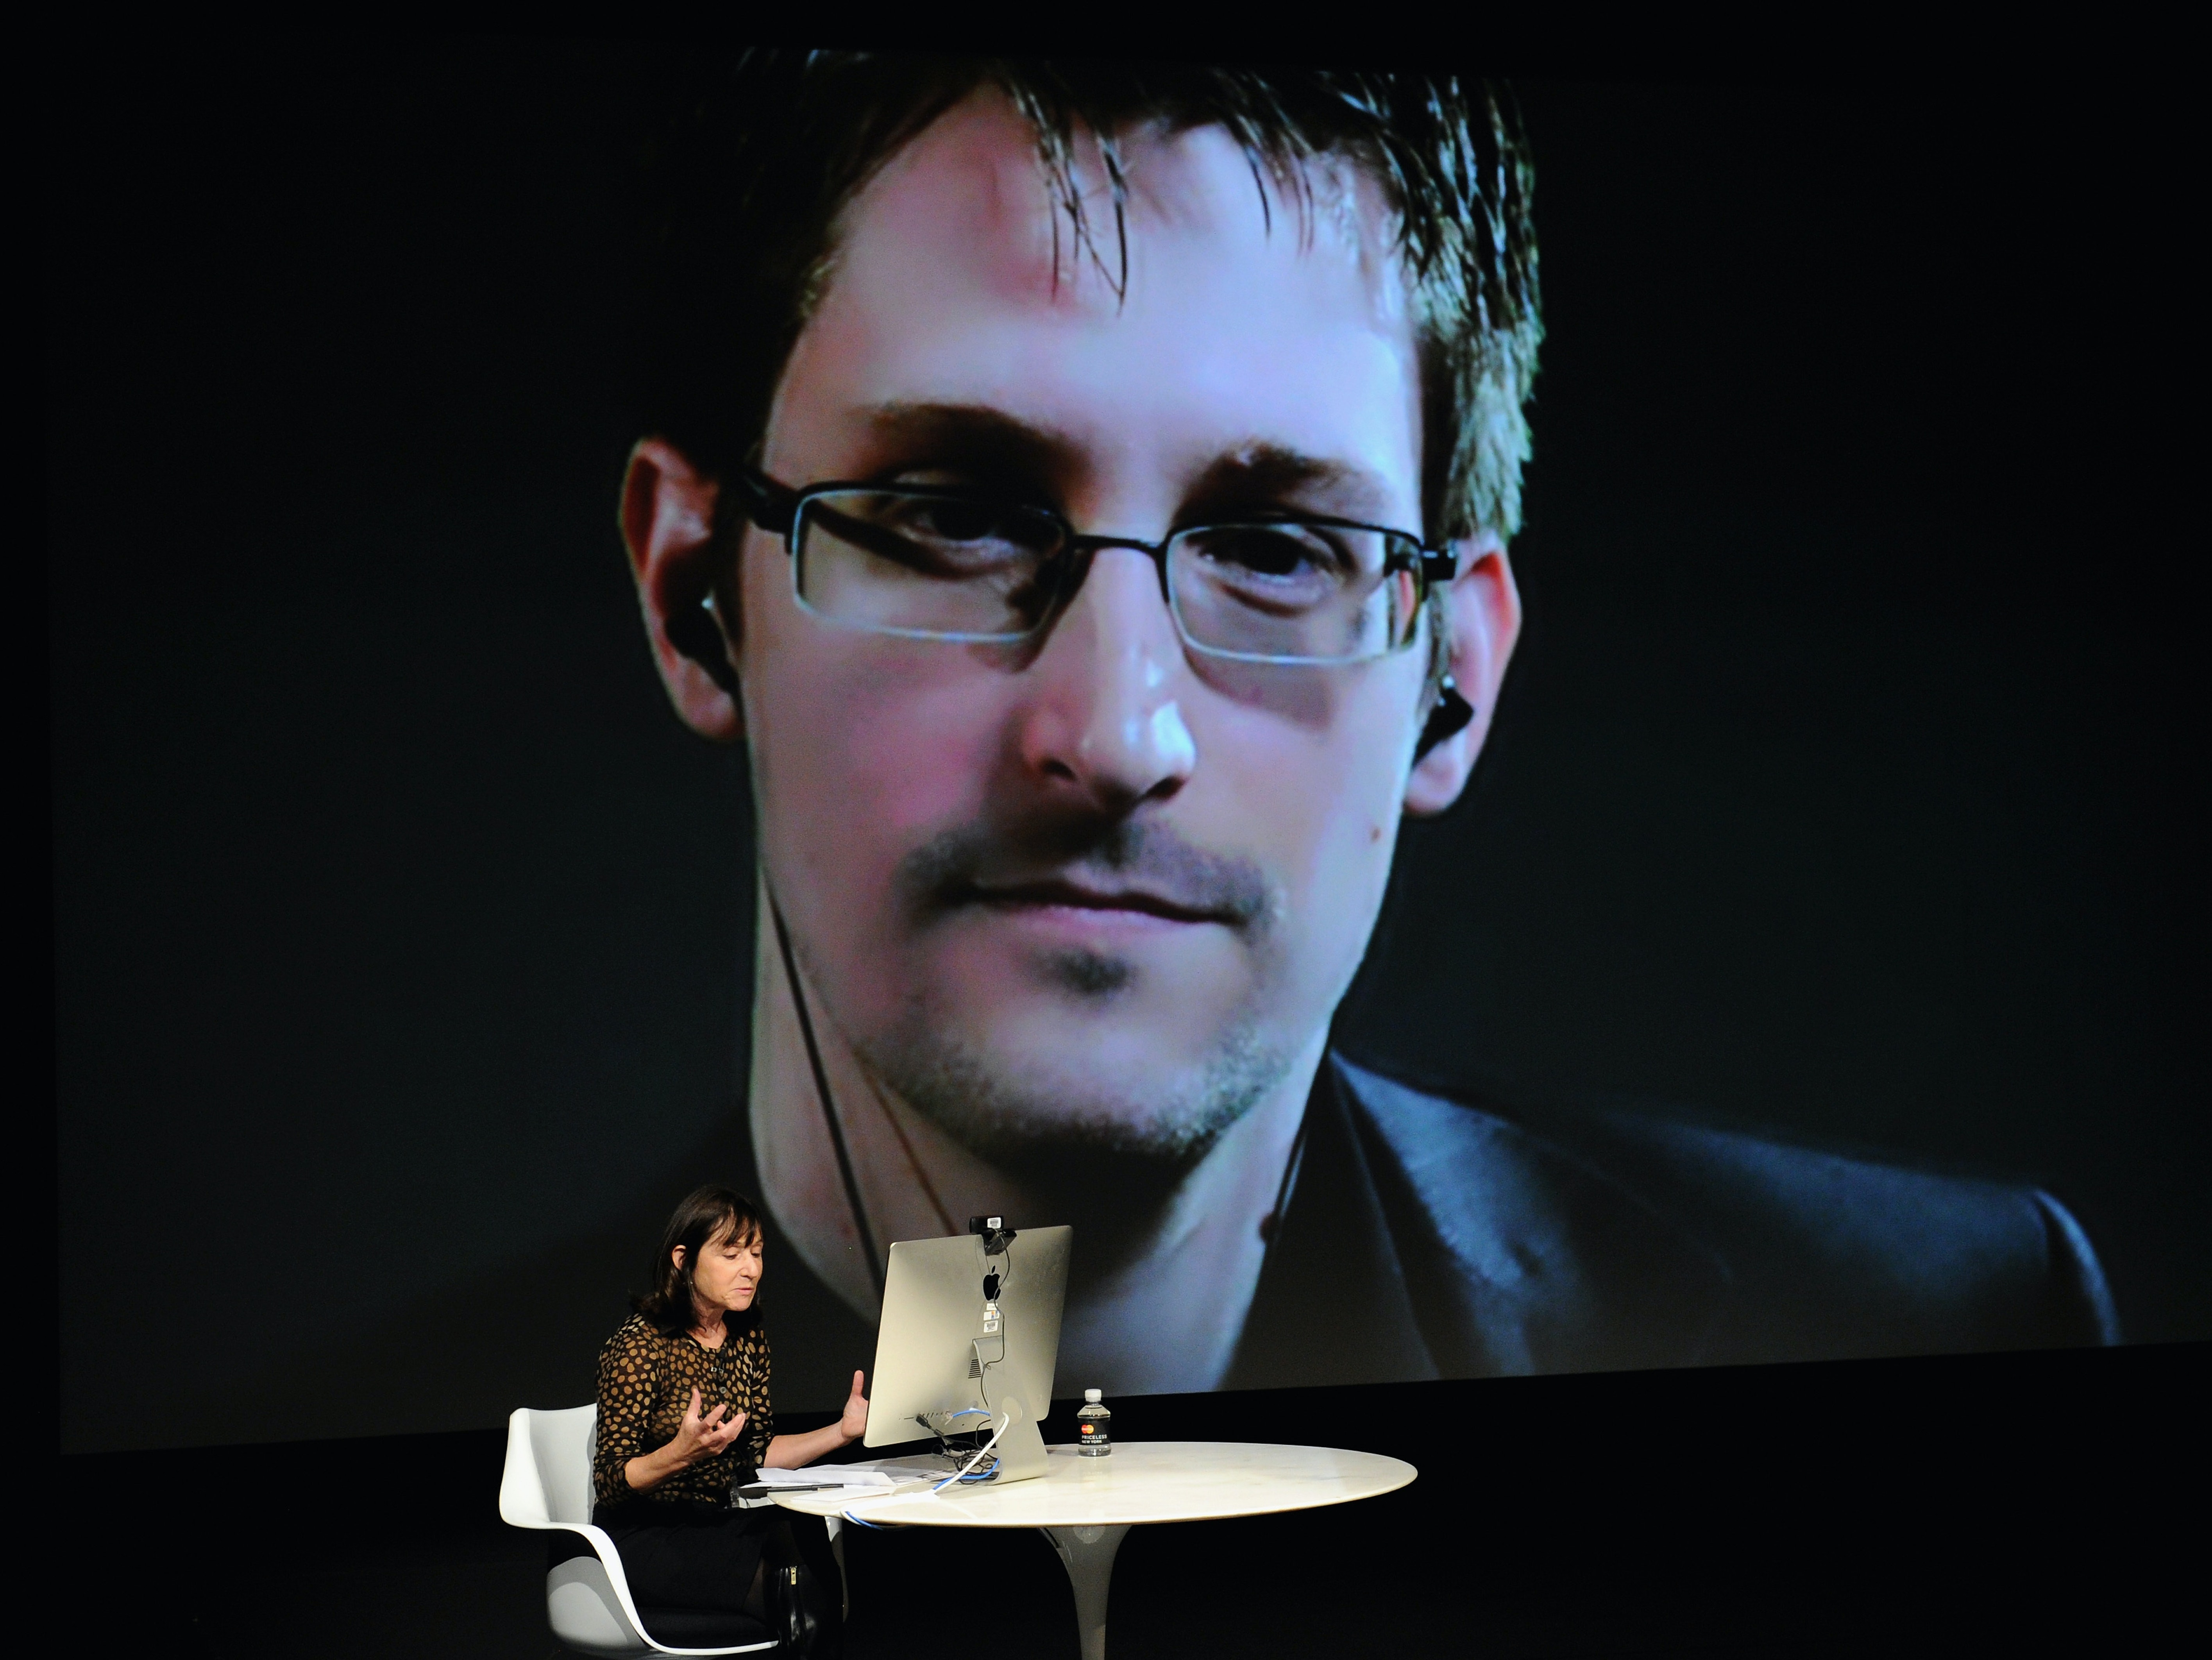 NEW YORK, NY - OCTOBER 11:  General view of atmosphere at the Edward Snowden Interviewed by Jane Mayer at the MasterCard stage at SVA Theatre during The New Yorker Festival 2014 on October 11, 2014 in New York City.  (Photo by Bryan Bedder/Getty Images for The New Yorker)